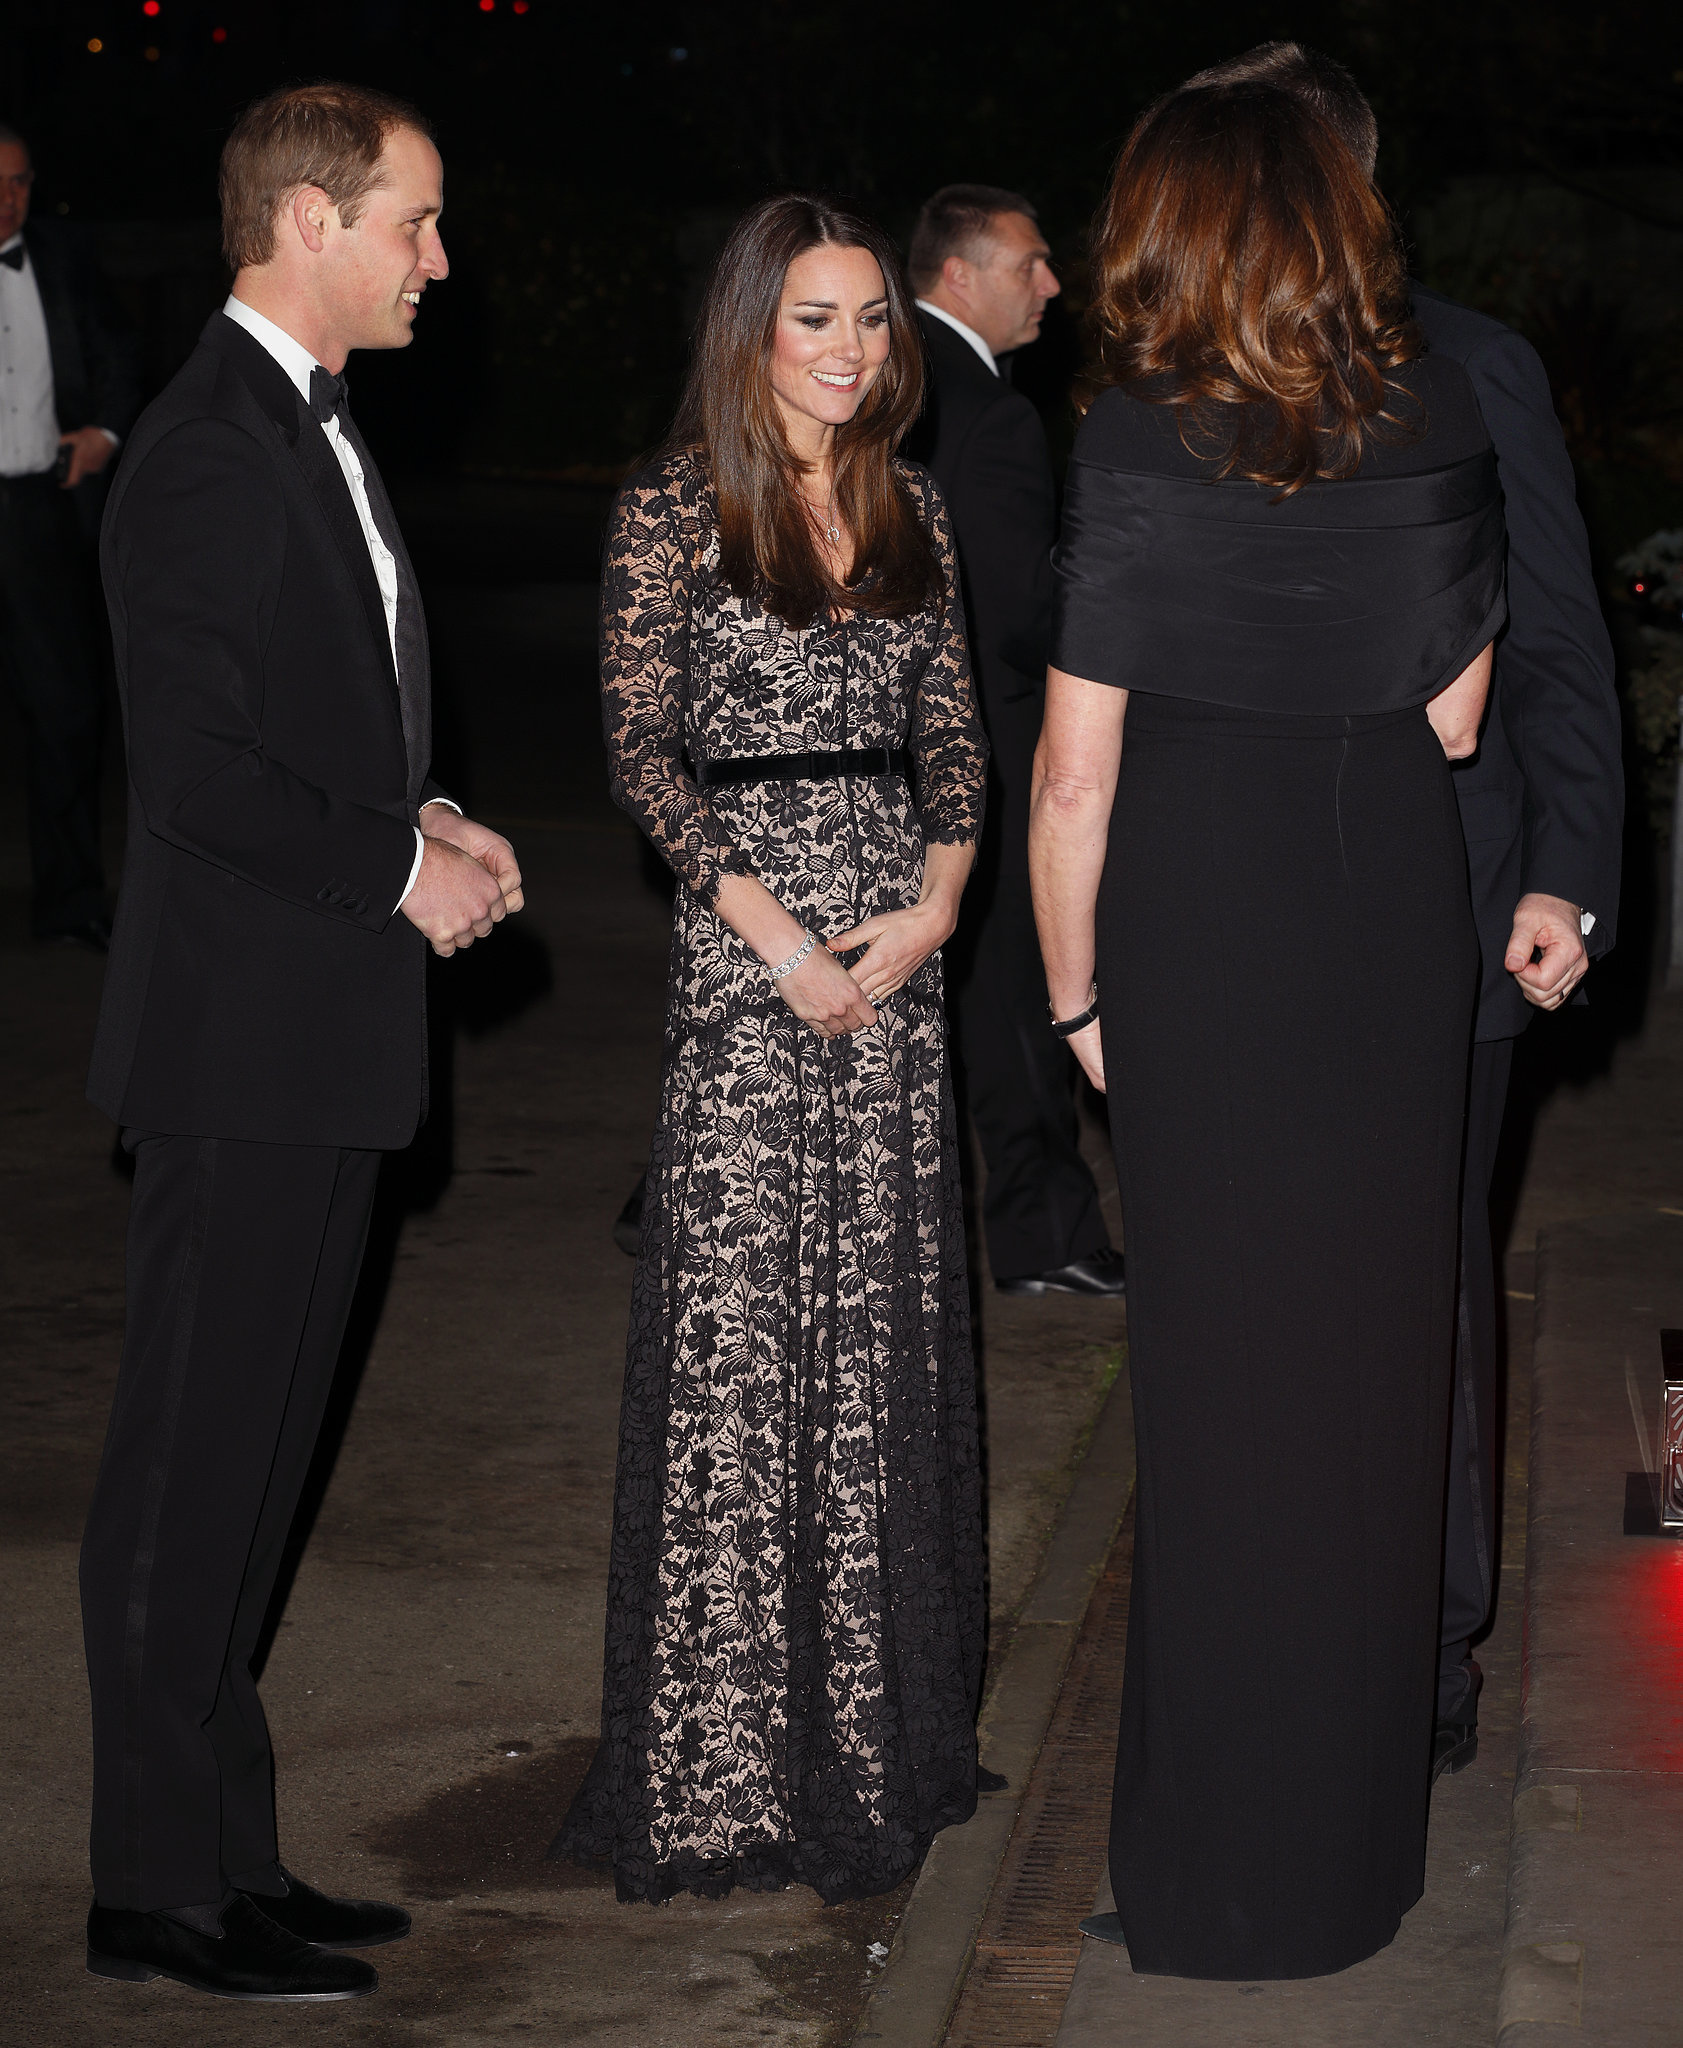 Kate Middleton in a Temperley Gown